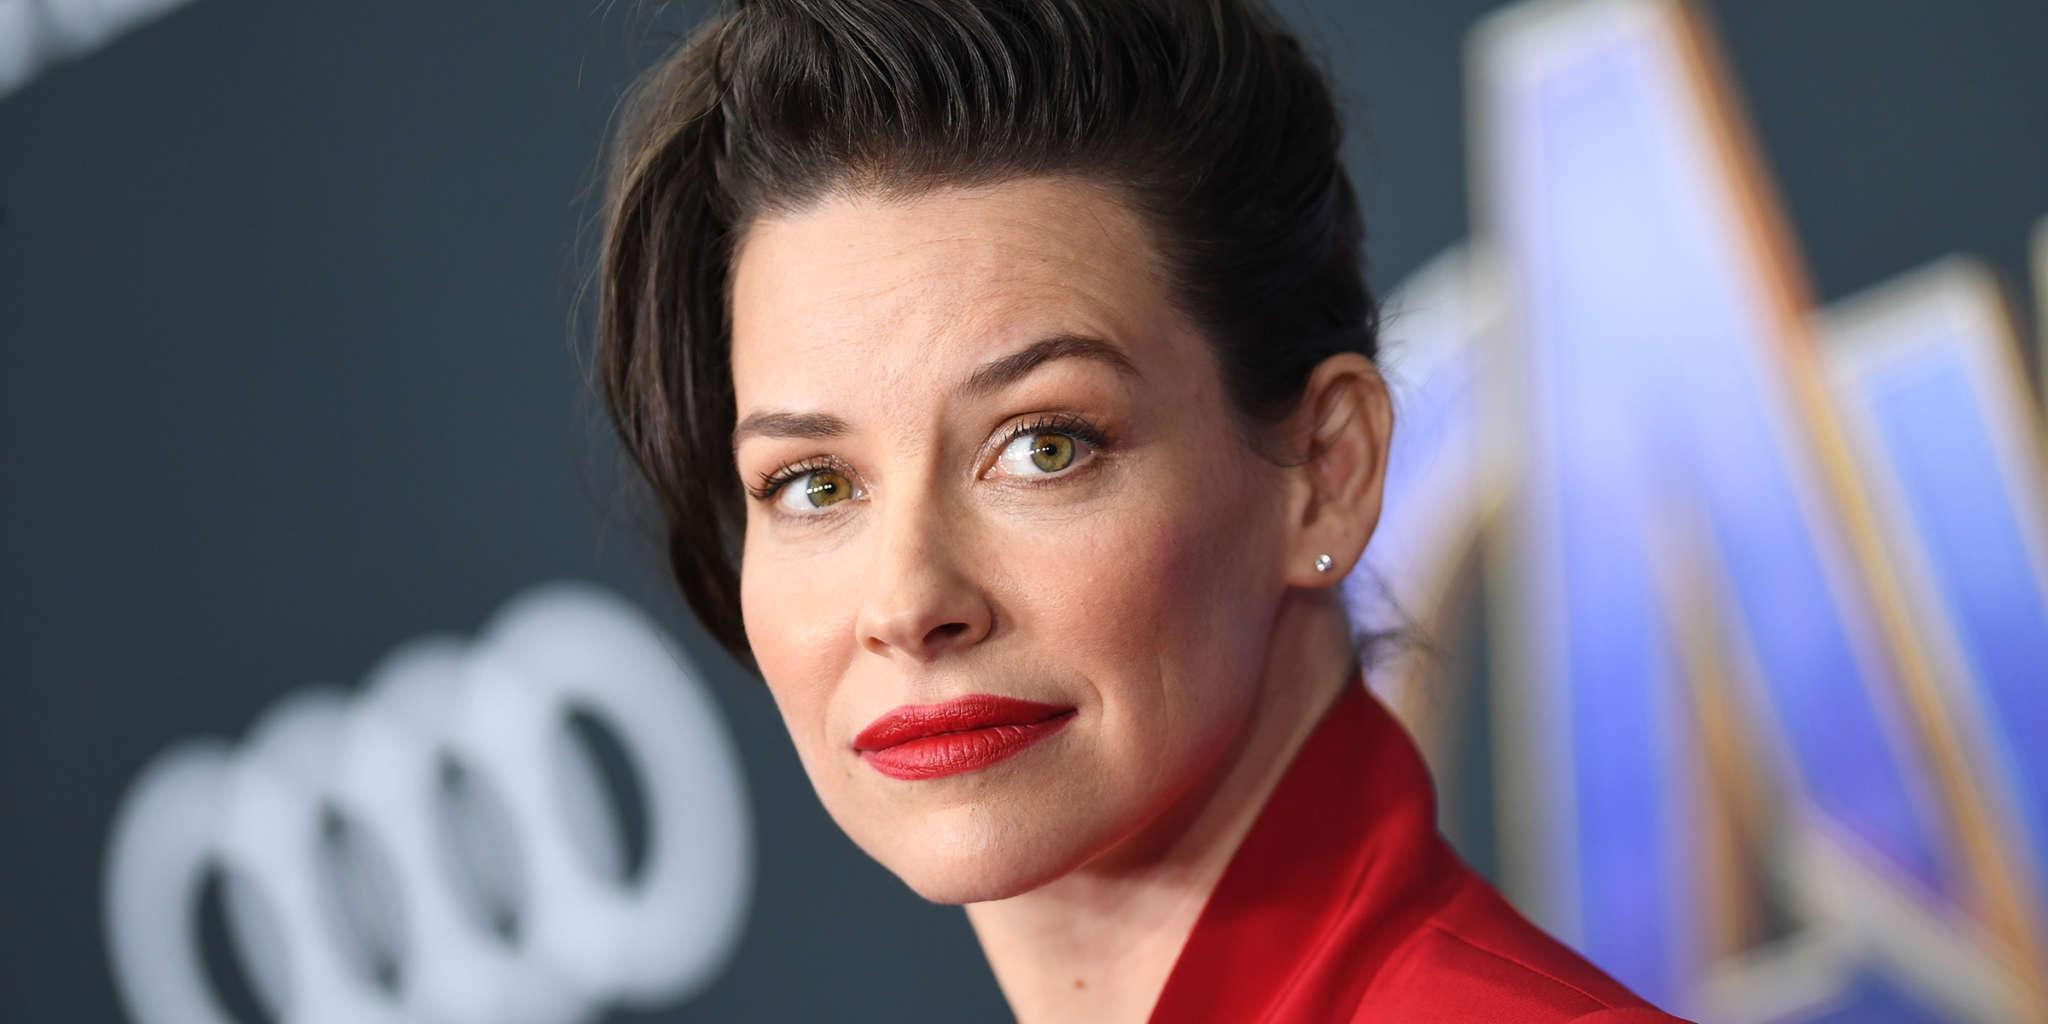 Evangeline Lilly Fans Outraged After She Dismisses The Coronavirus Danger And Refuses To Self-Quarantine